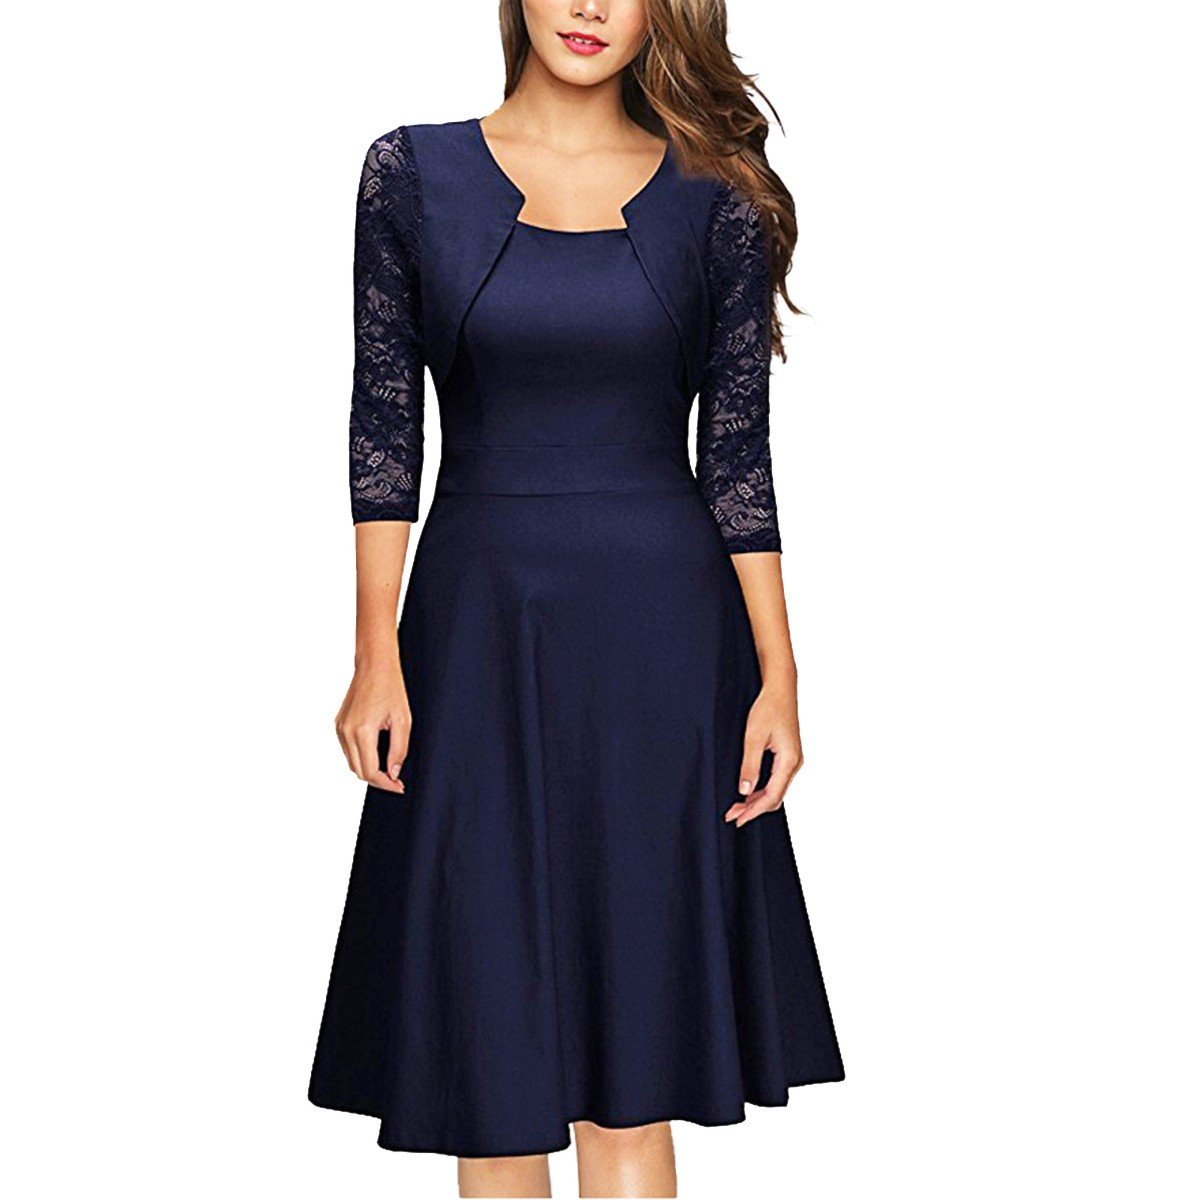 b25936414d3 Top 10 wholesale 1950s Swing Dress - Chinabrands.com